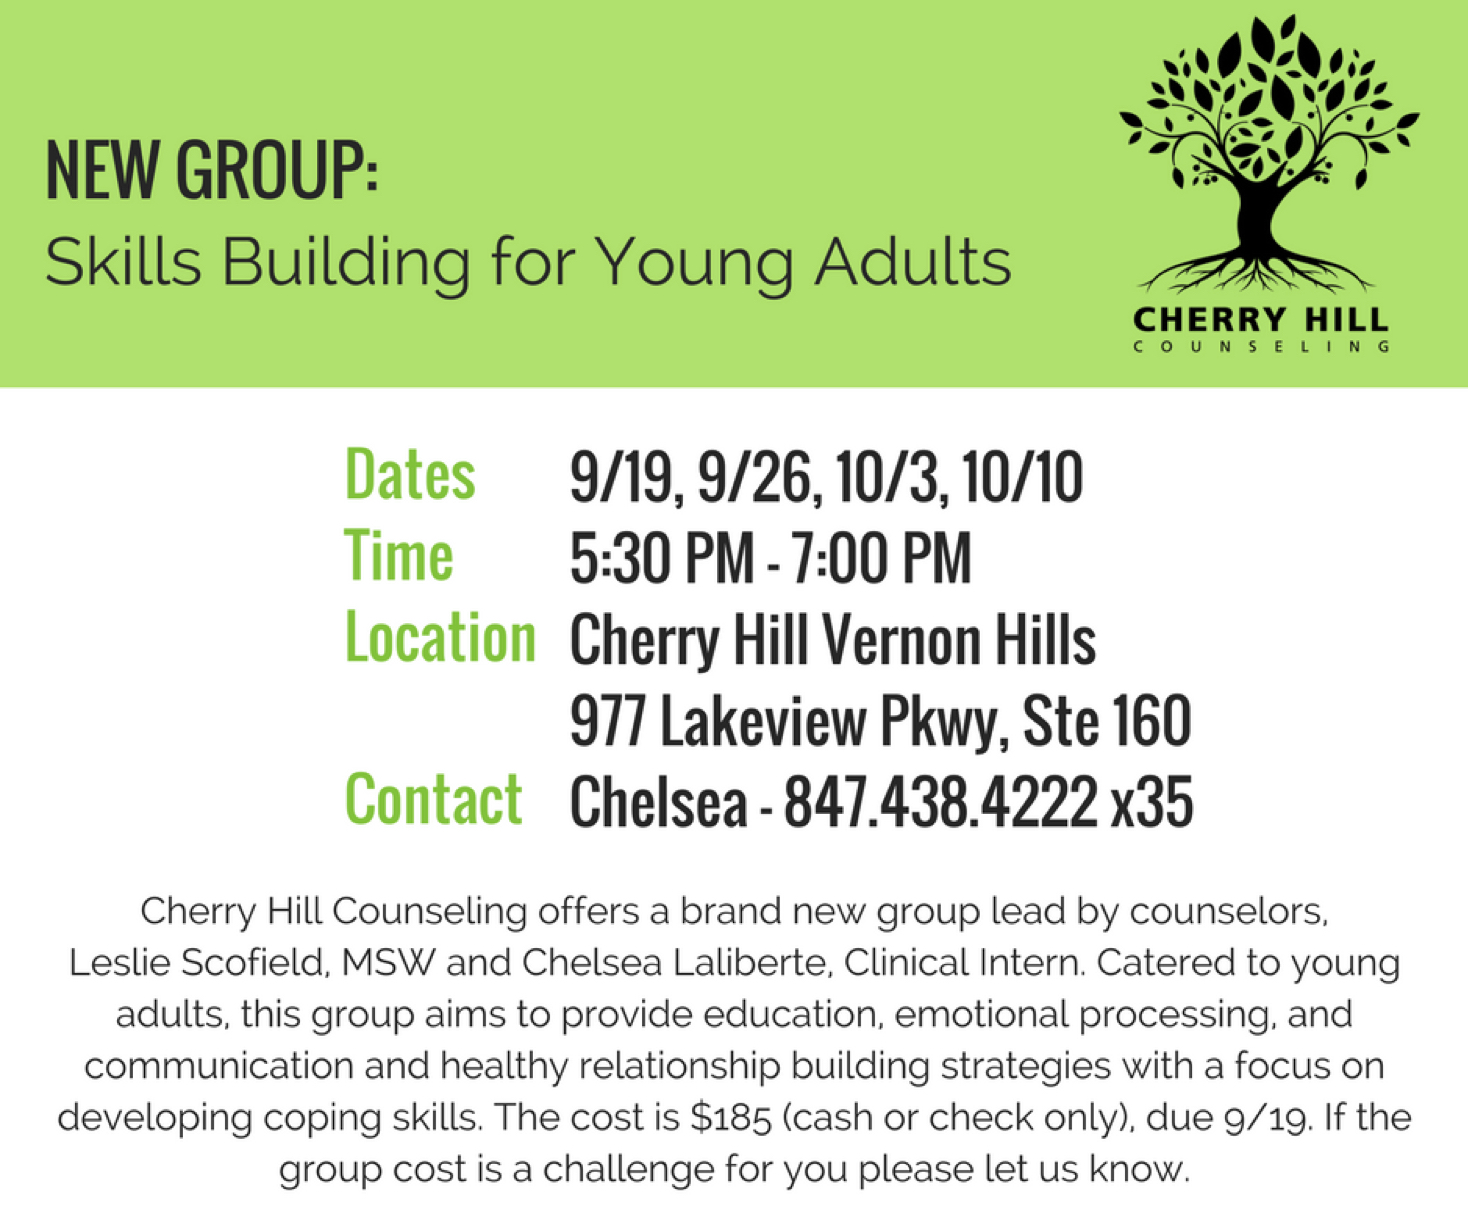 New Group Skill Building For Young Adults